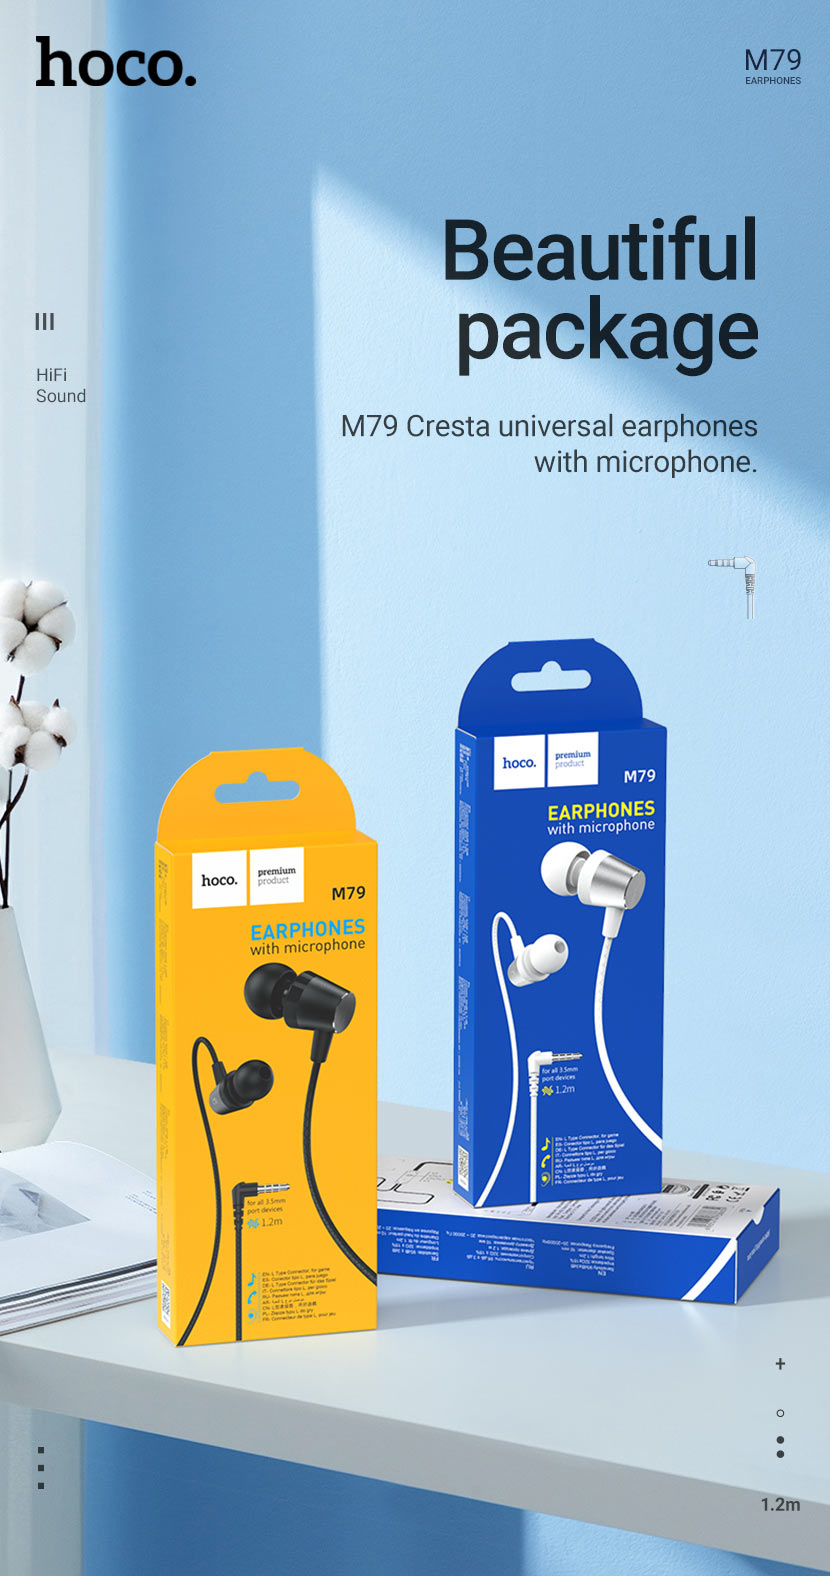 hoco news m79 cresta universal earphones with microphone package en